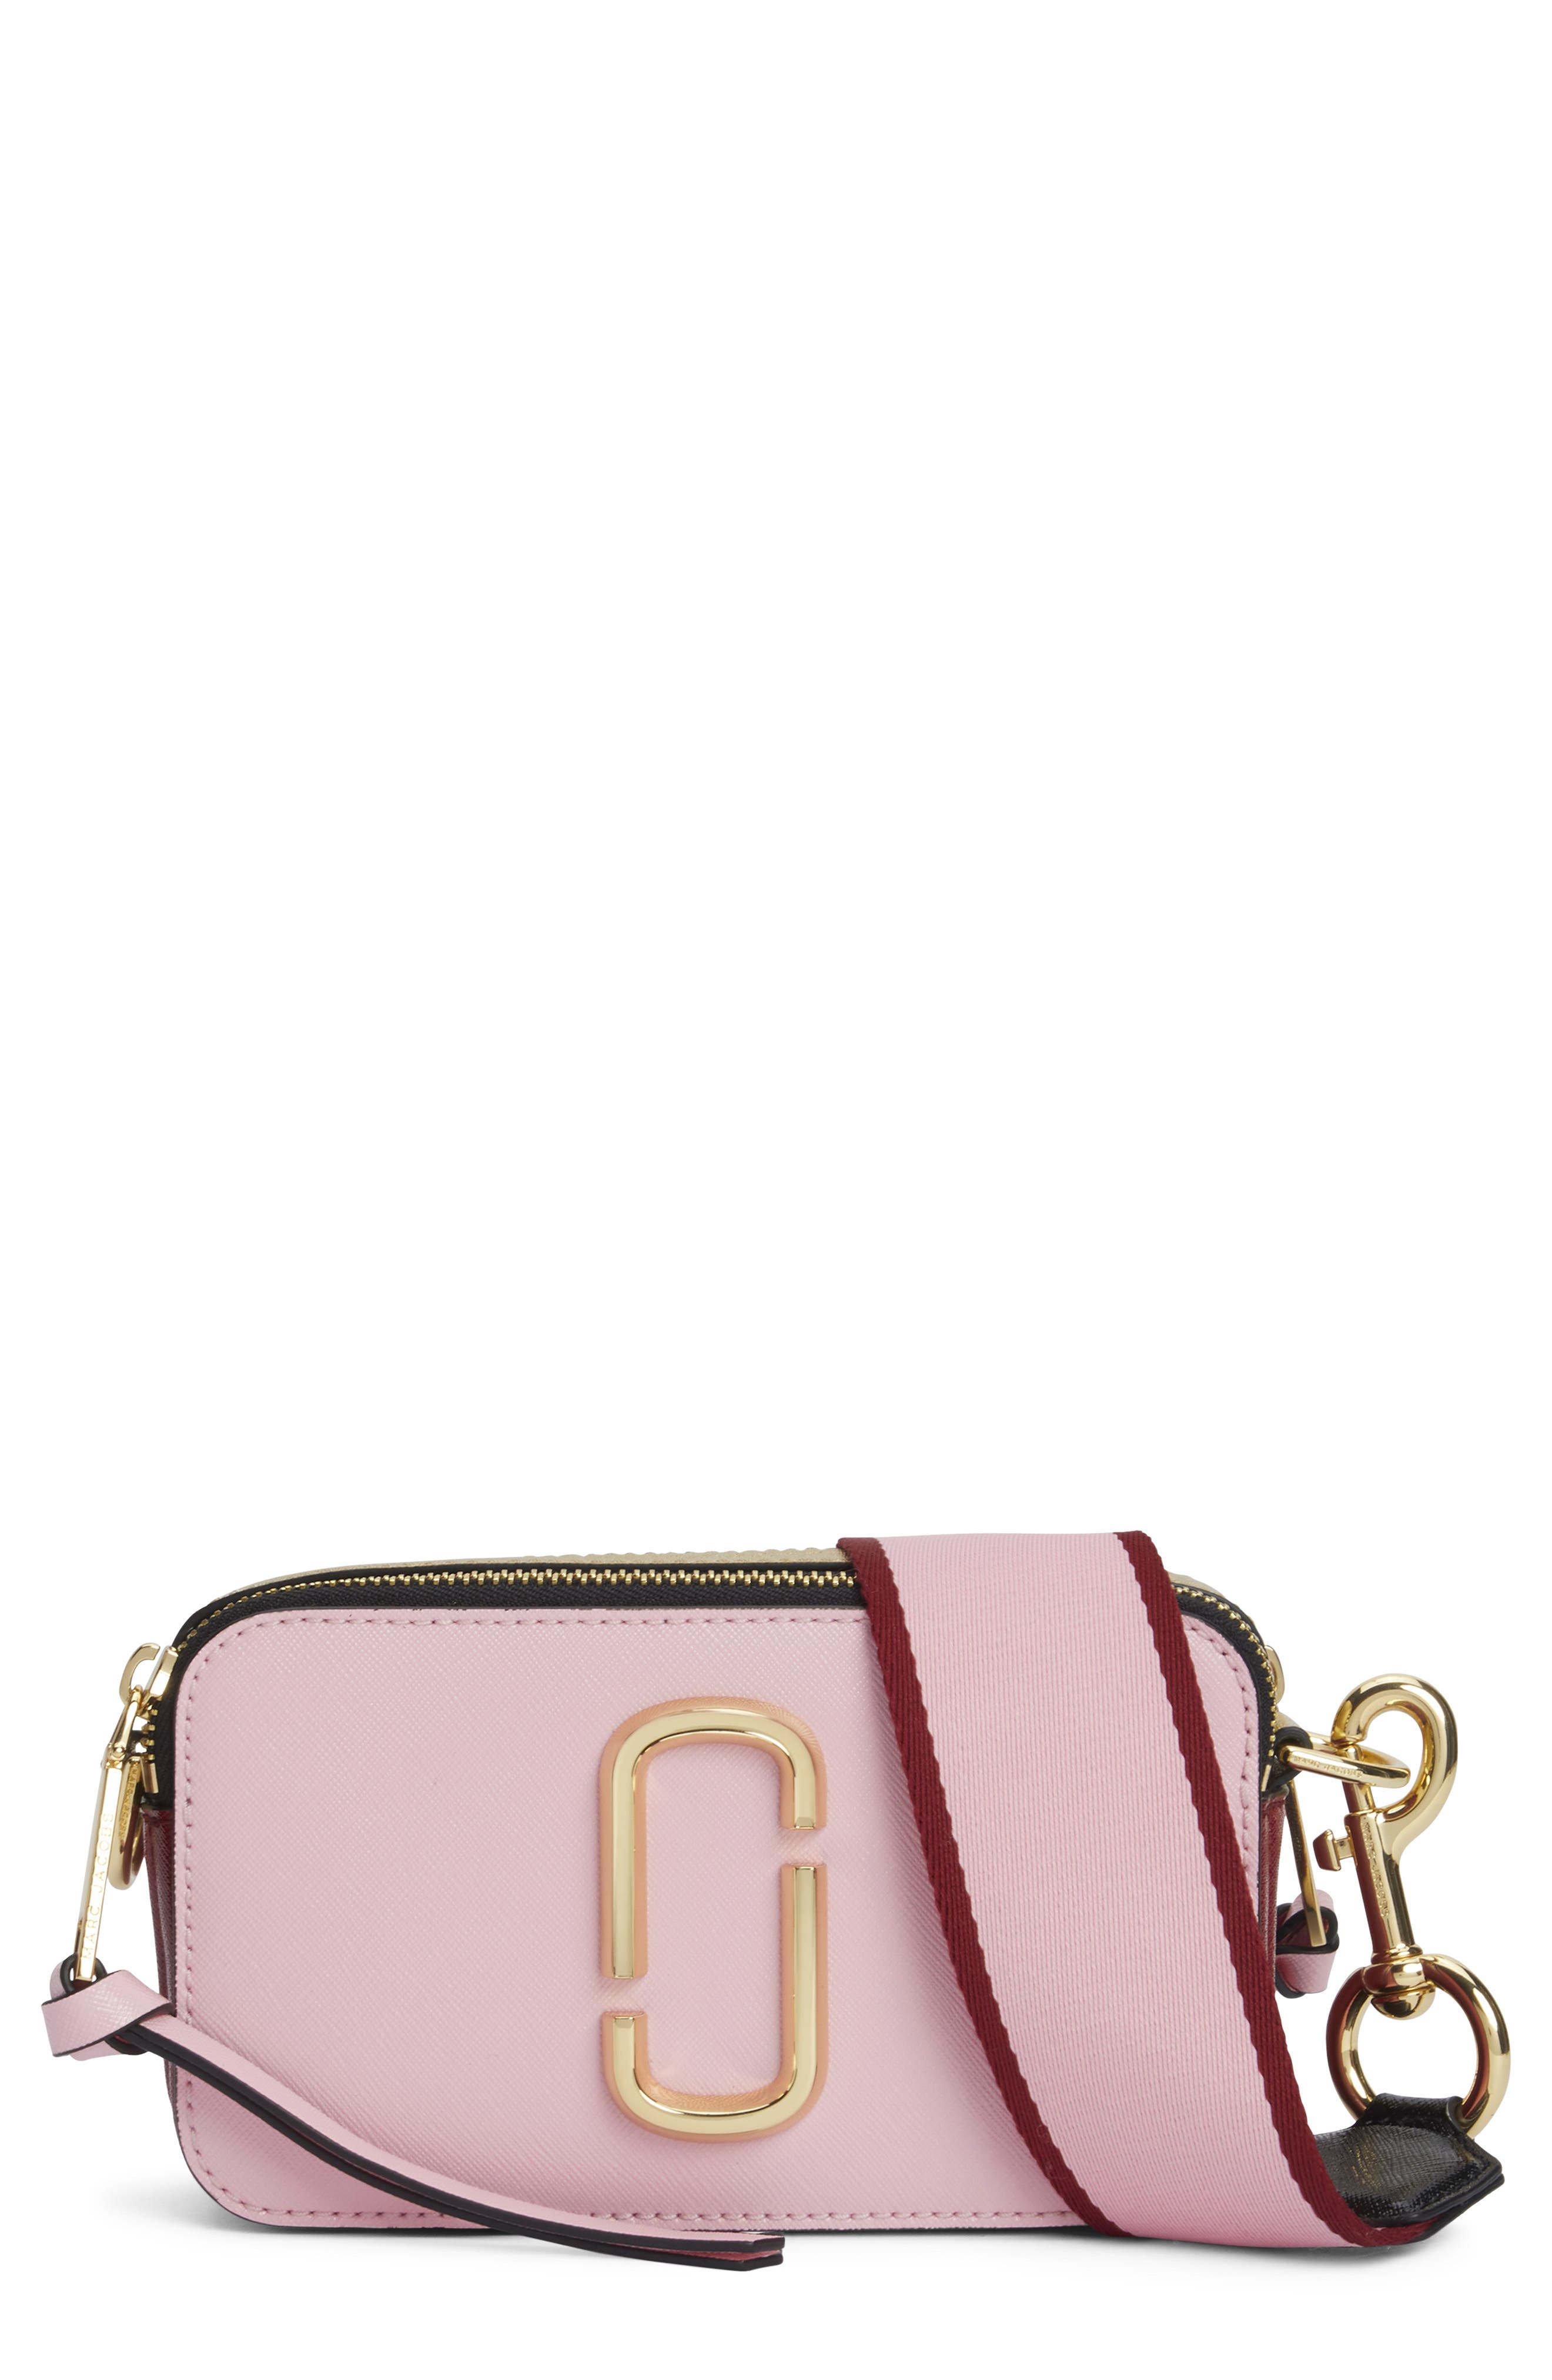 MARC JACOBS Snapshot Crossbody Bag, Main, color, BABY PINK/ RED